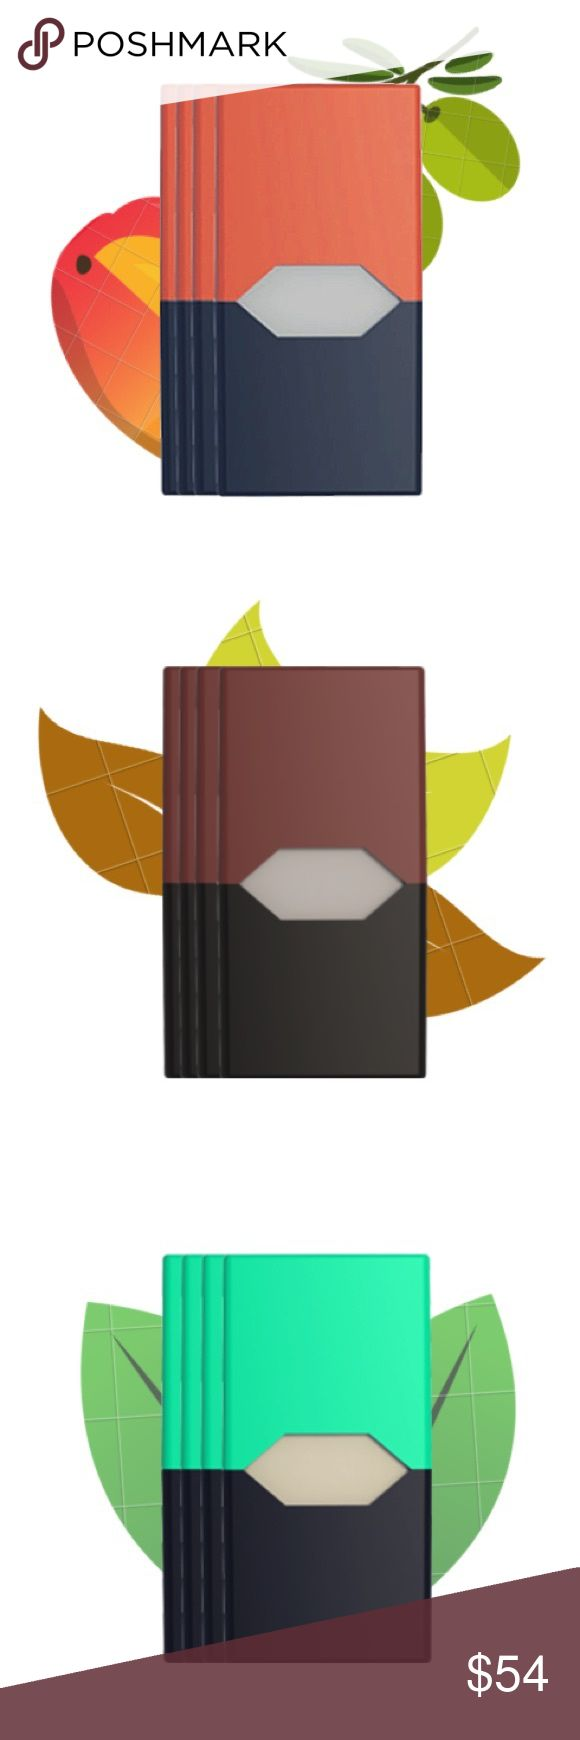 JUUL Mango, Virginia Tobacco and Cool Mint bundle 3 packs.   Mango   Cool Mint   Virginia Tobacco   4 pods per pack. JUUL Accessories